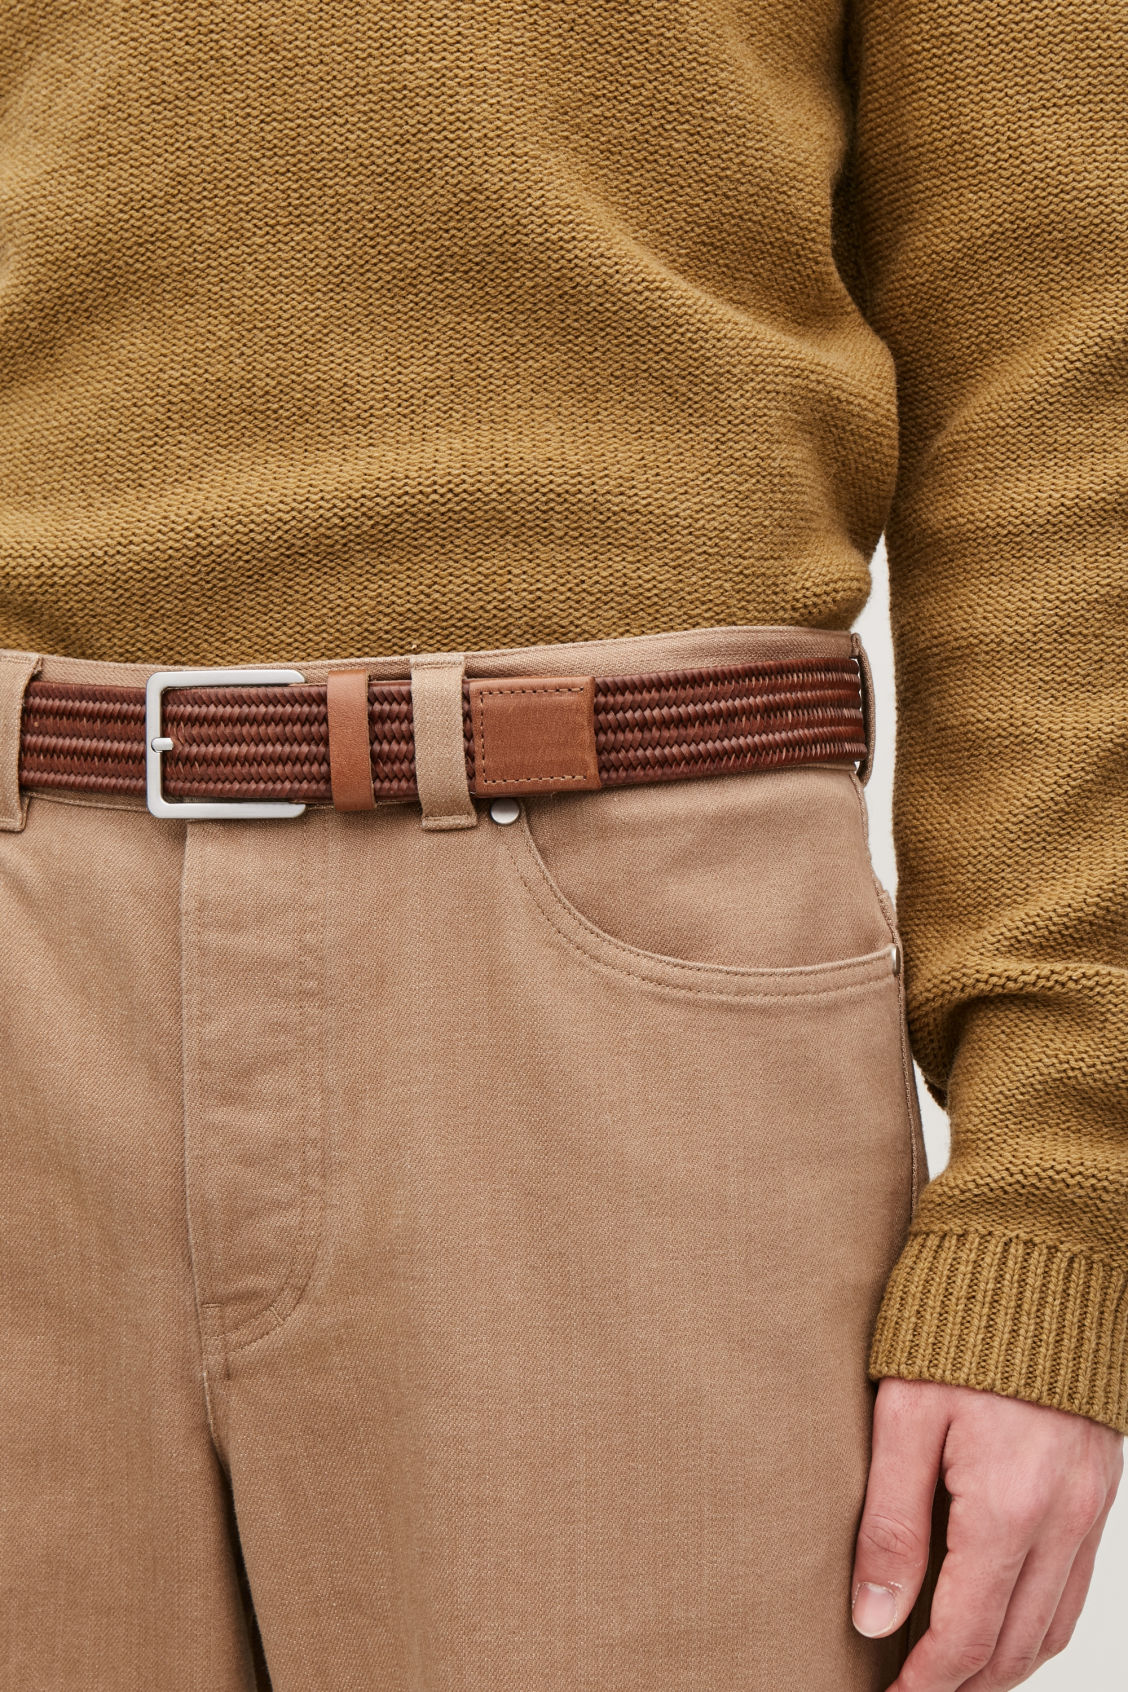 Detailed image of Cos elastic braided leather belt in beige